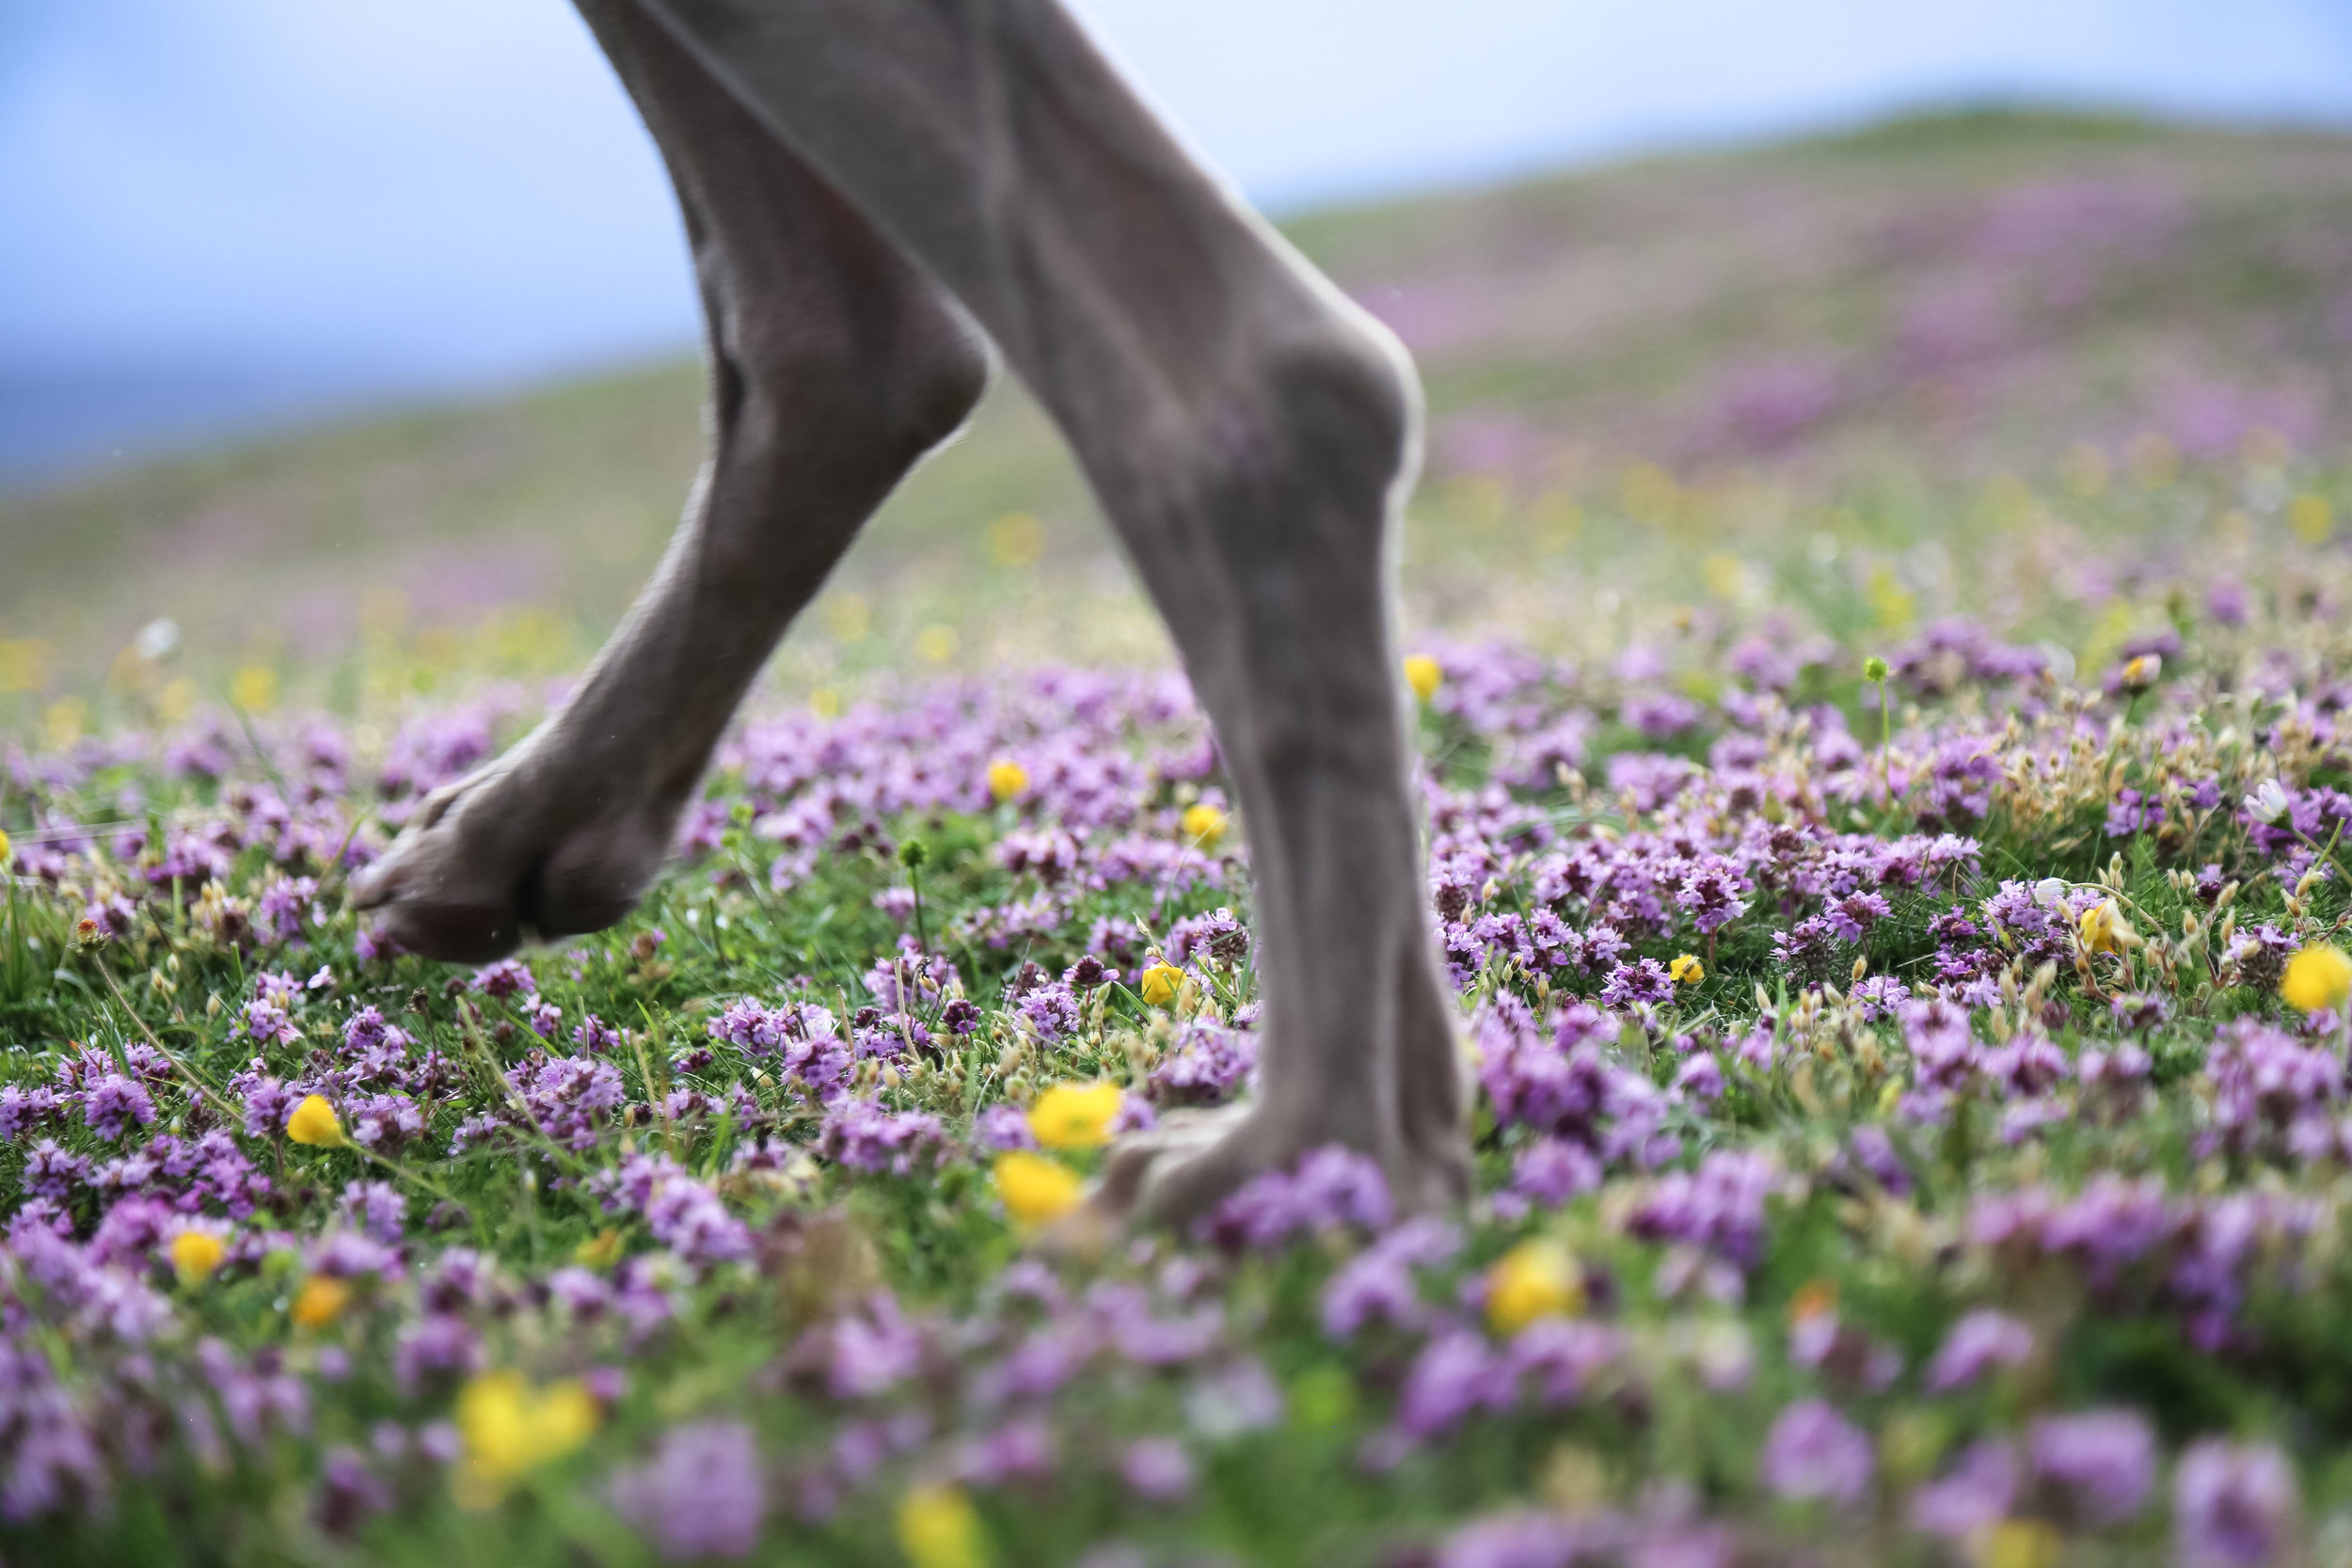 Our dog Woody runs into the camera's frame on the machair grasslands close to Mulranny, Co Mayo.